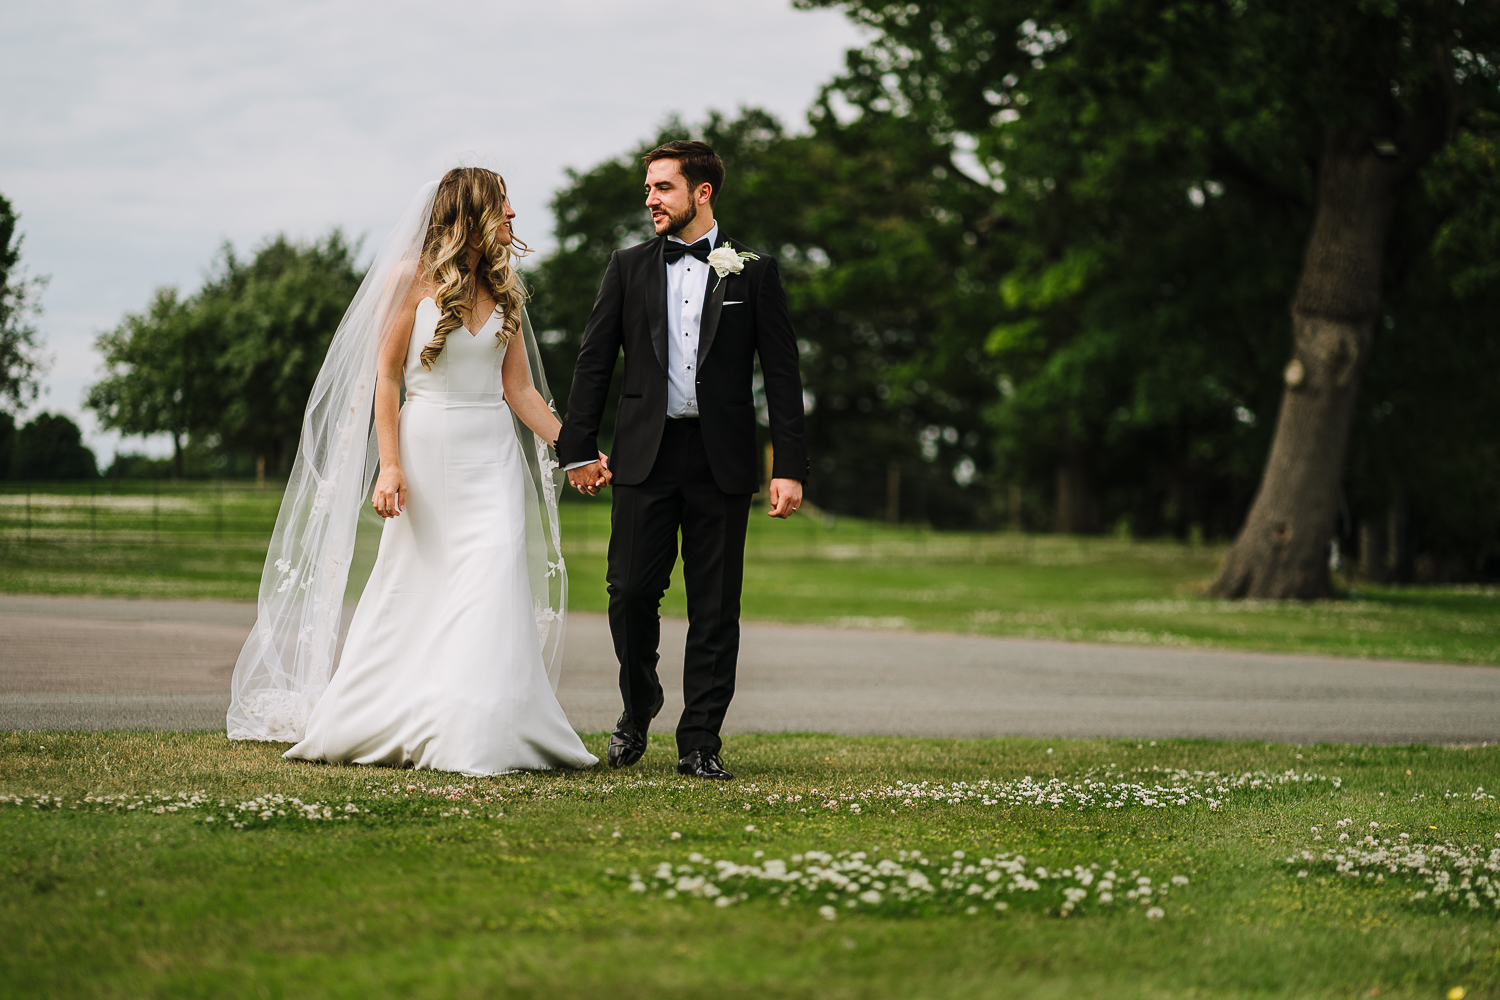 Couples photos at Merrydale Manor